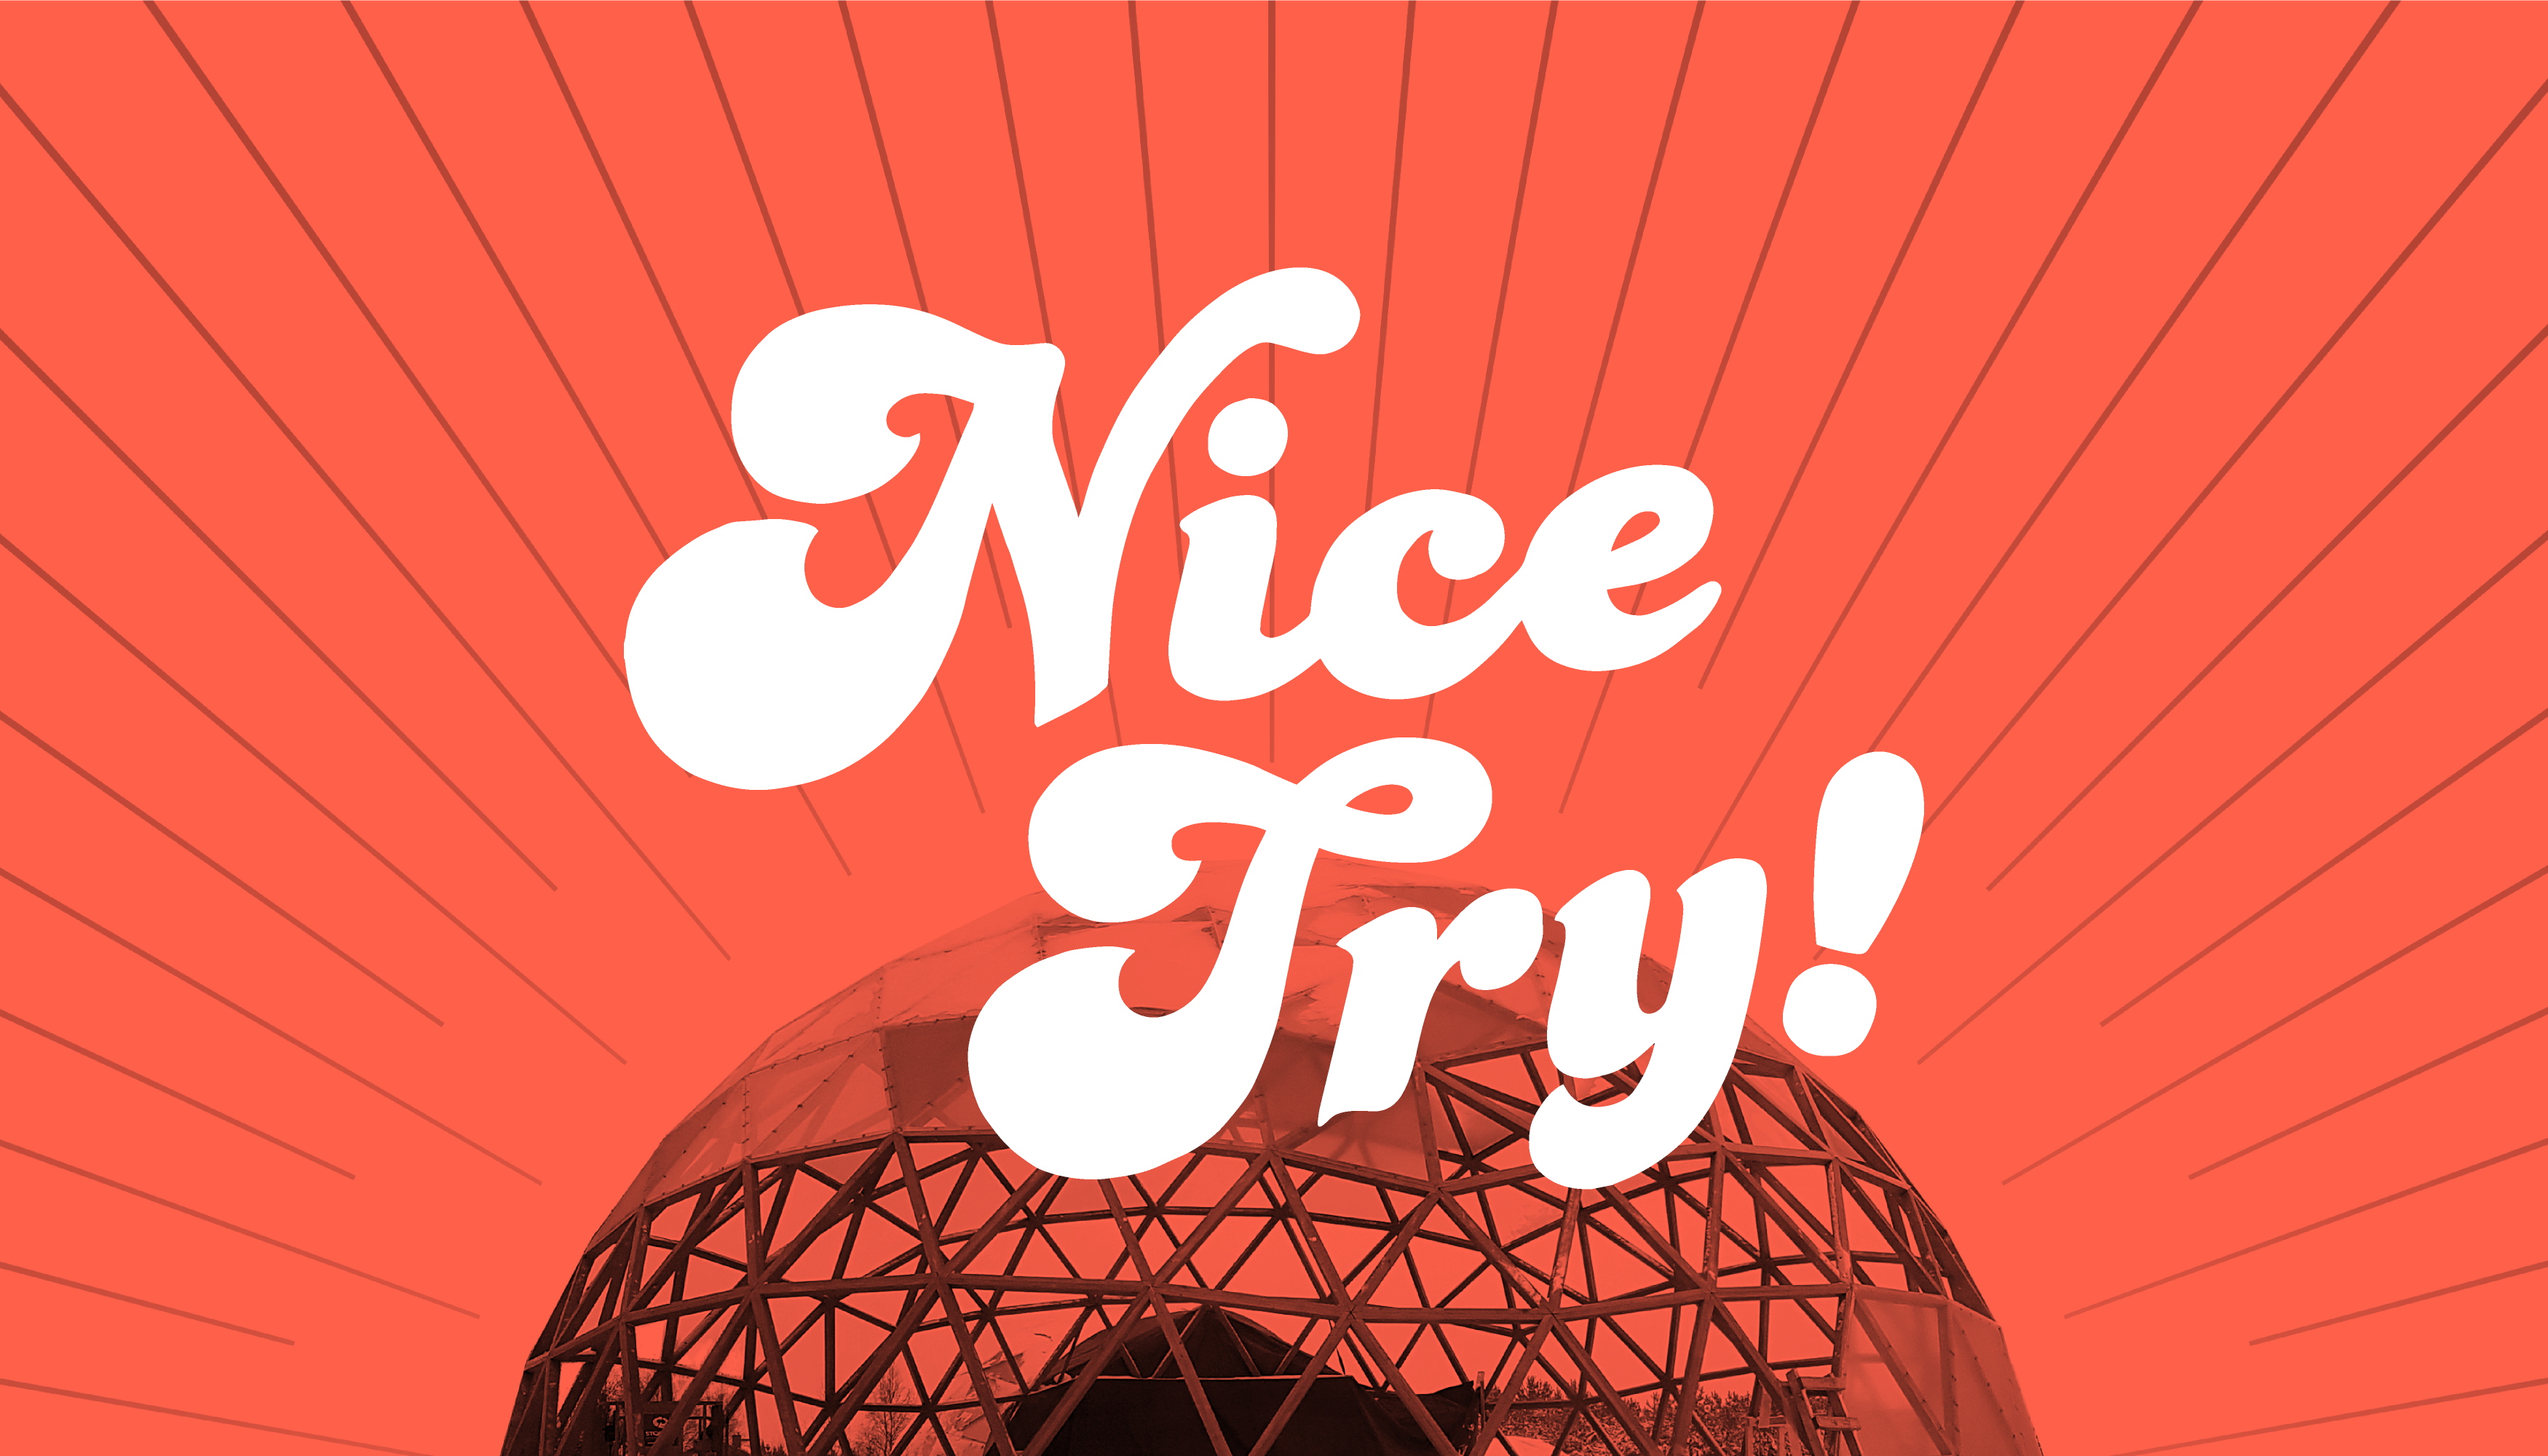 Introducing Curbed's new podcast: 'Nice Try! Utopian'